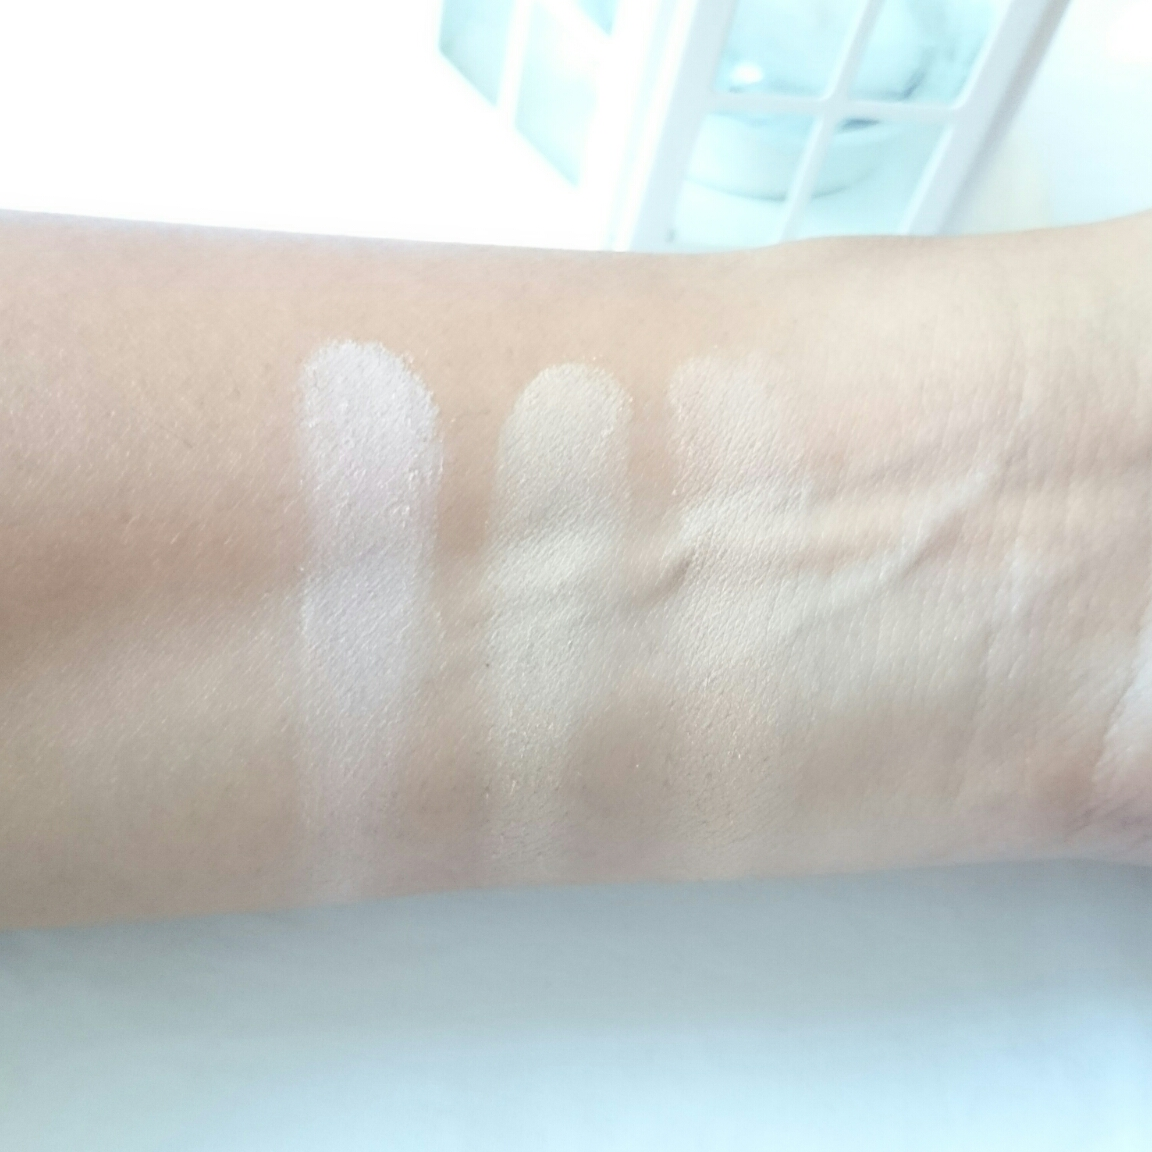 Maybelline White Super Fresh Compact Powder review and swatches